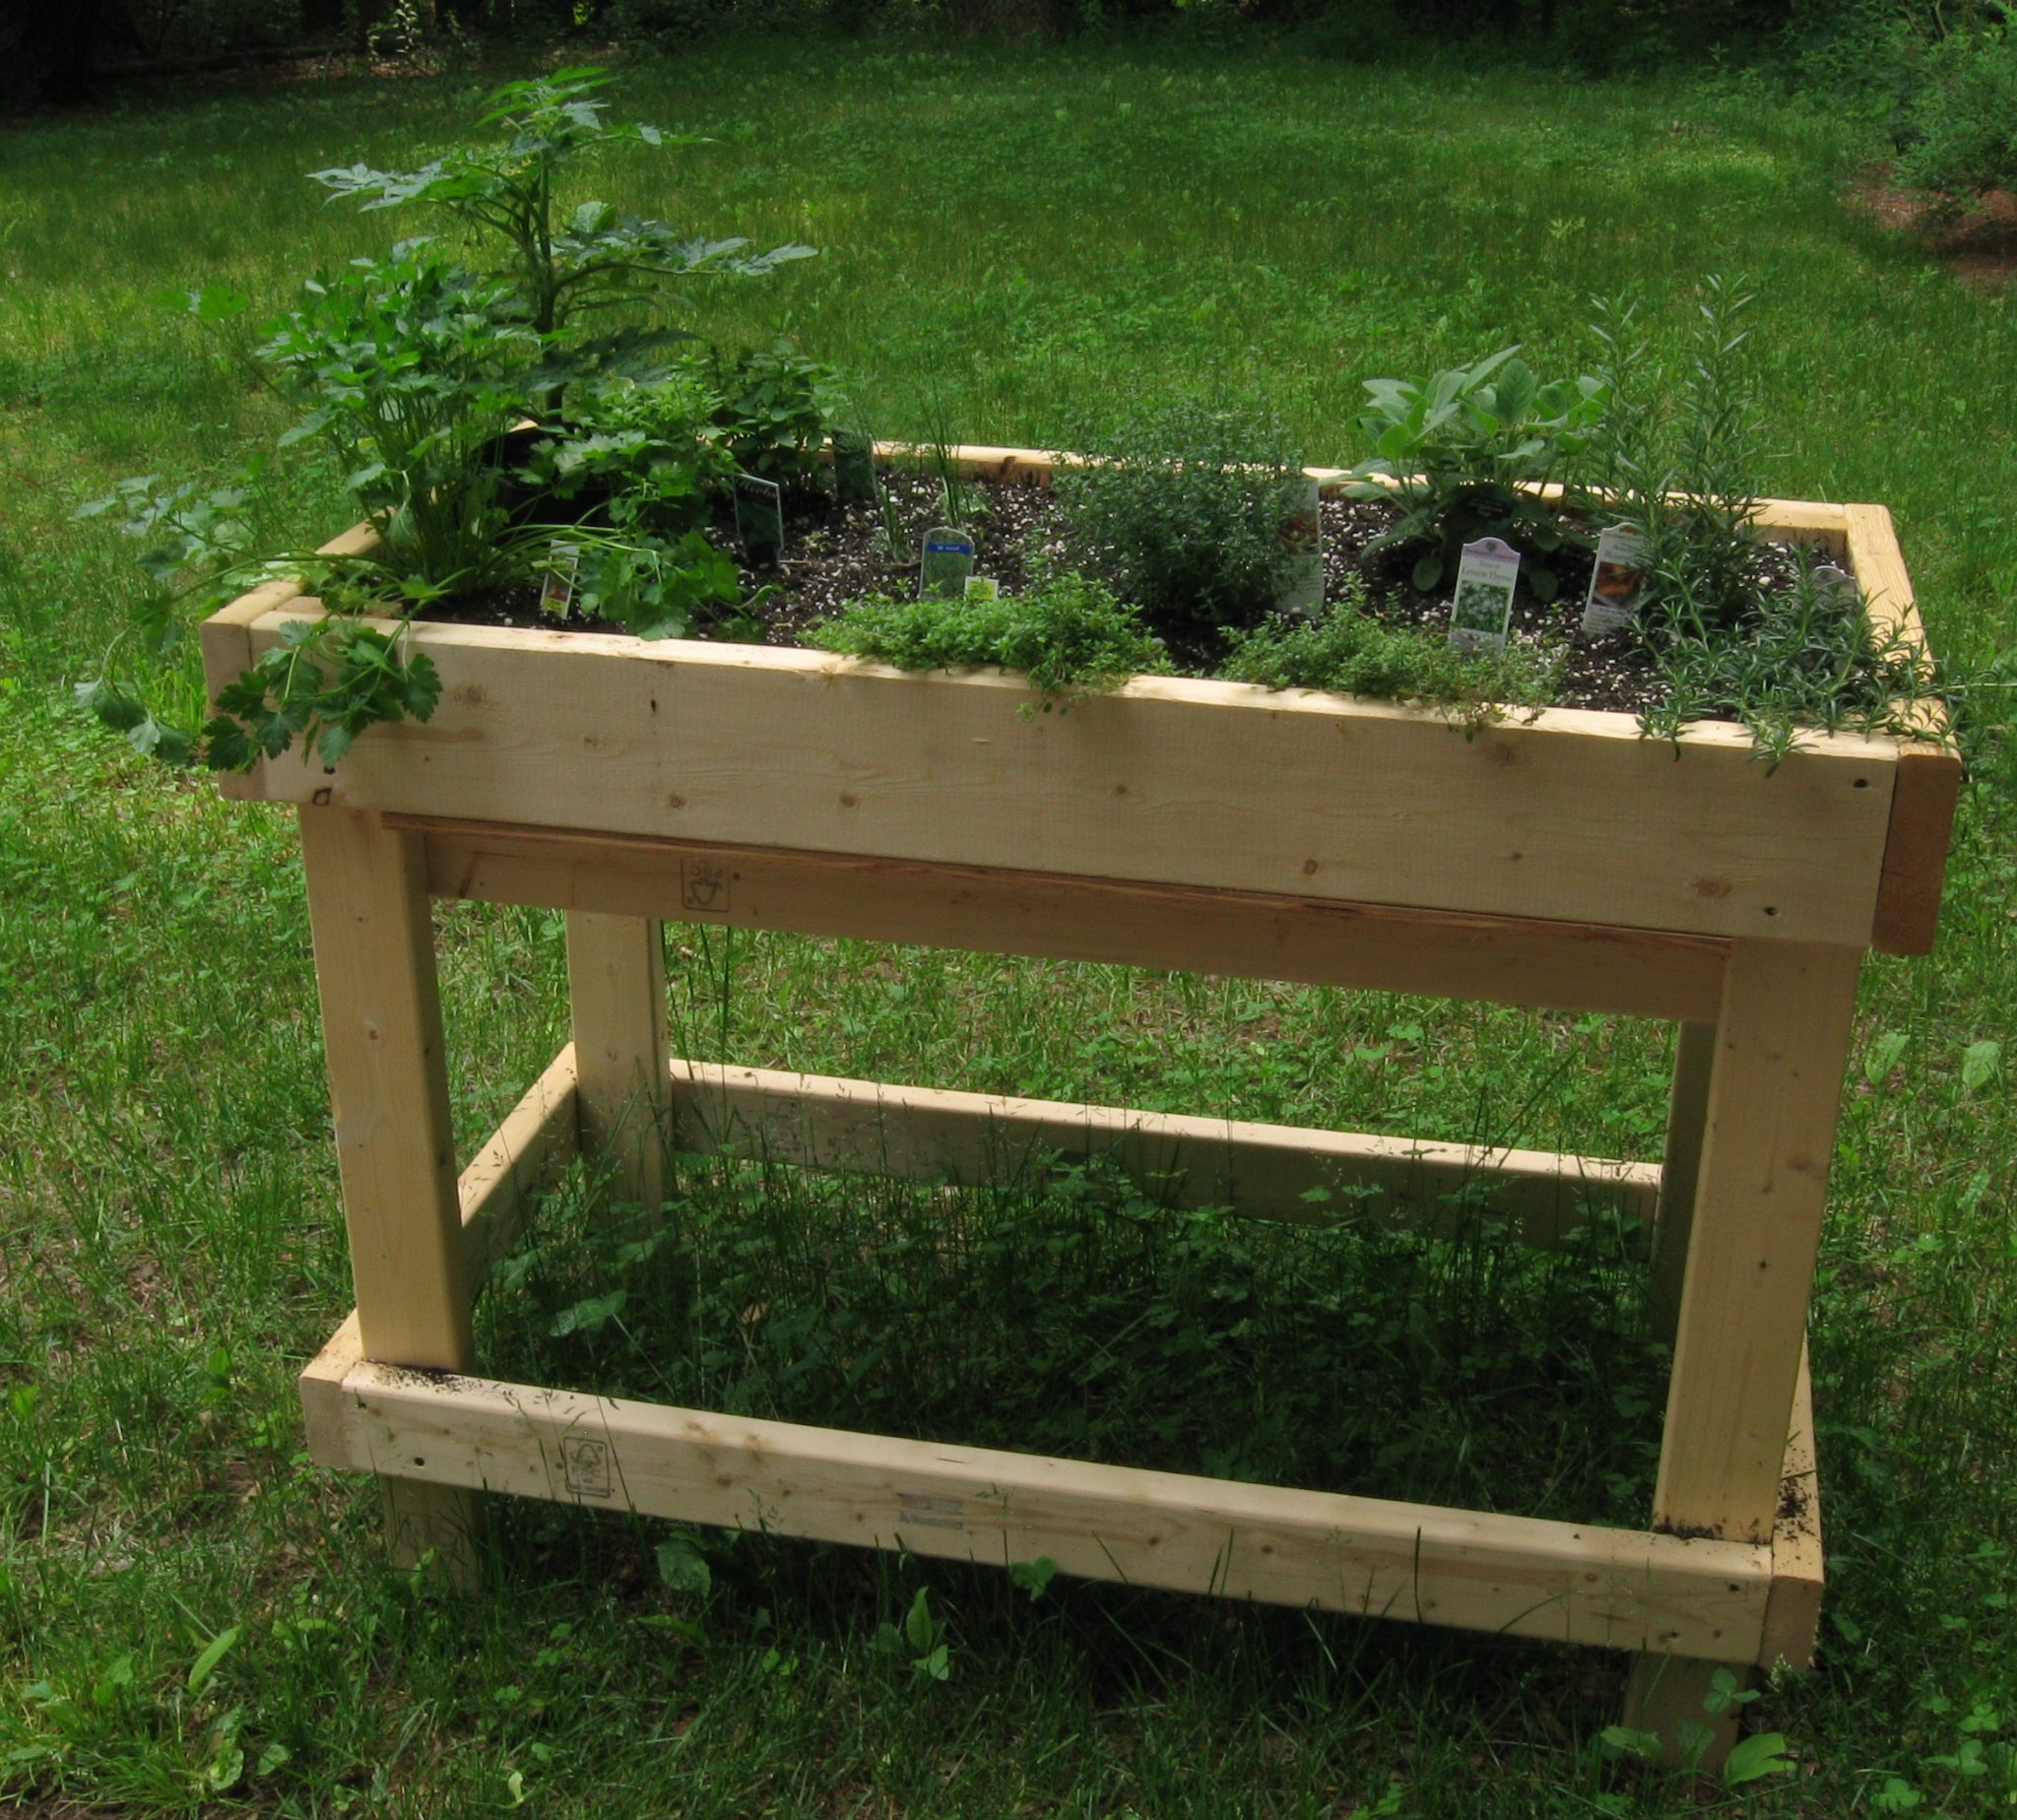 Wooden raised bed with herbs growing inside it